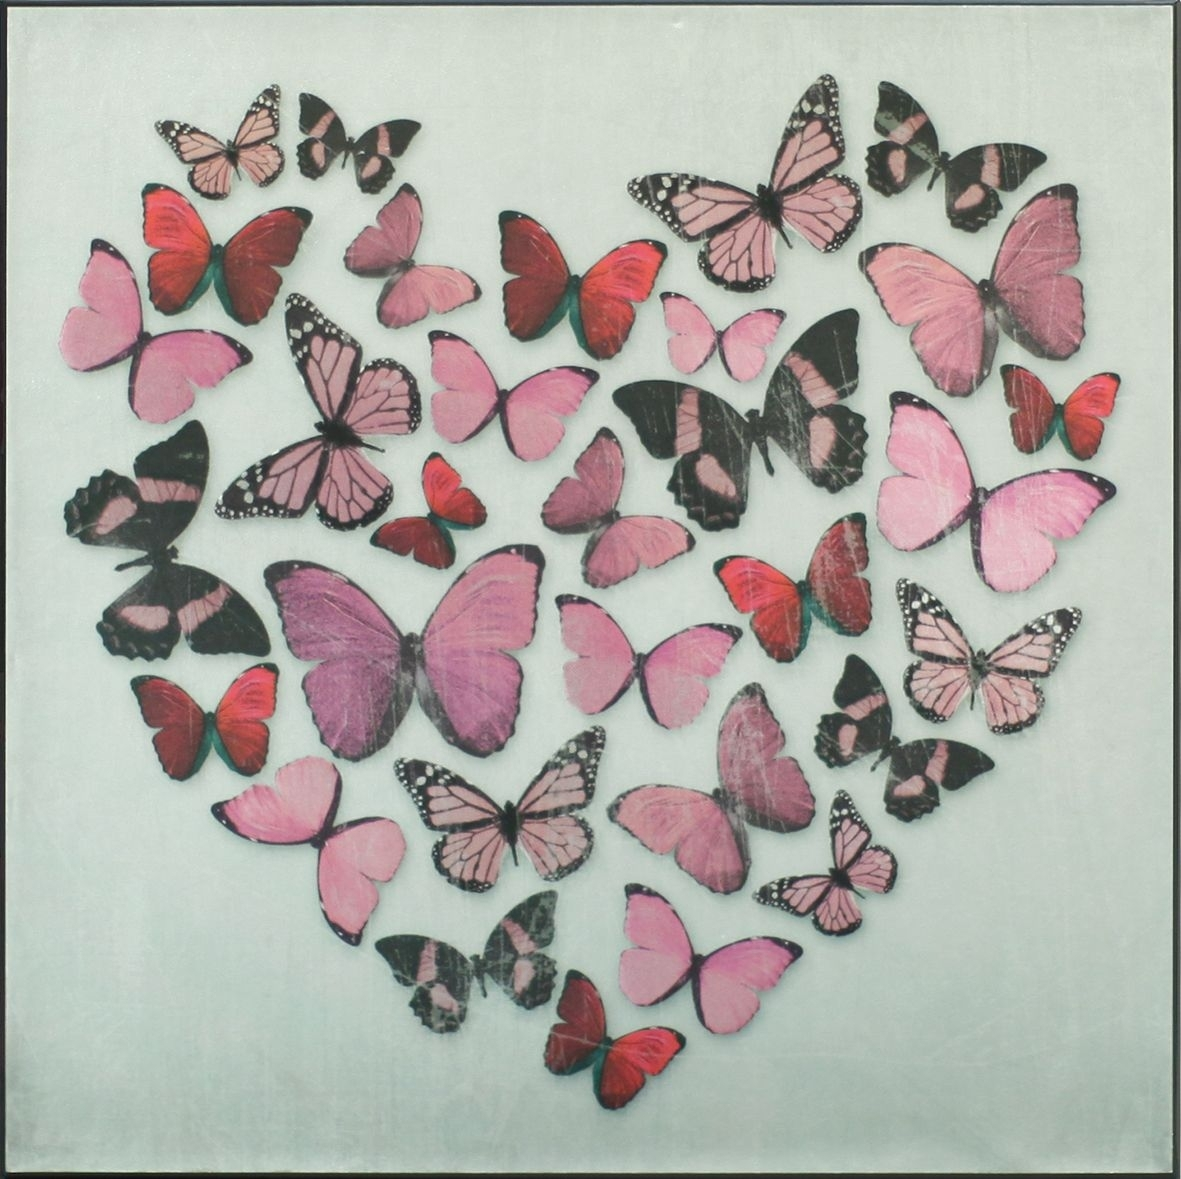 Butterfly Love Pink Superfoil Canvasarthouse : Wallpaper Direct Pertaining To 2017 Butterflies Canvas Wall Art (View 3 of 15)